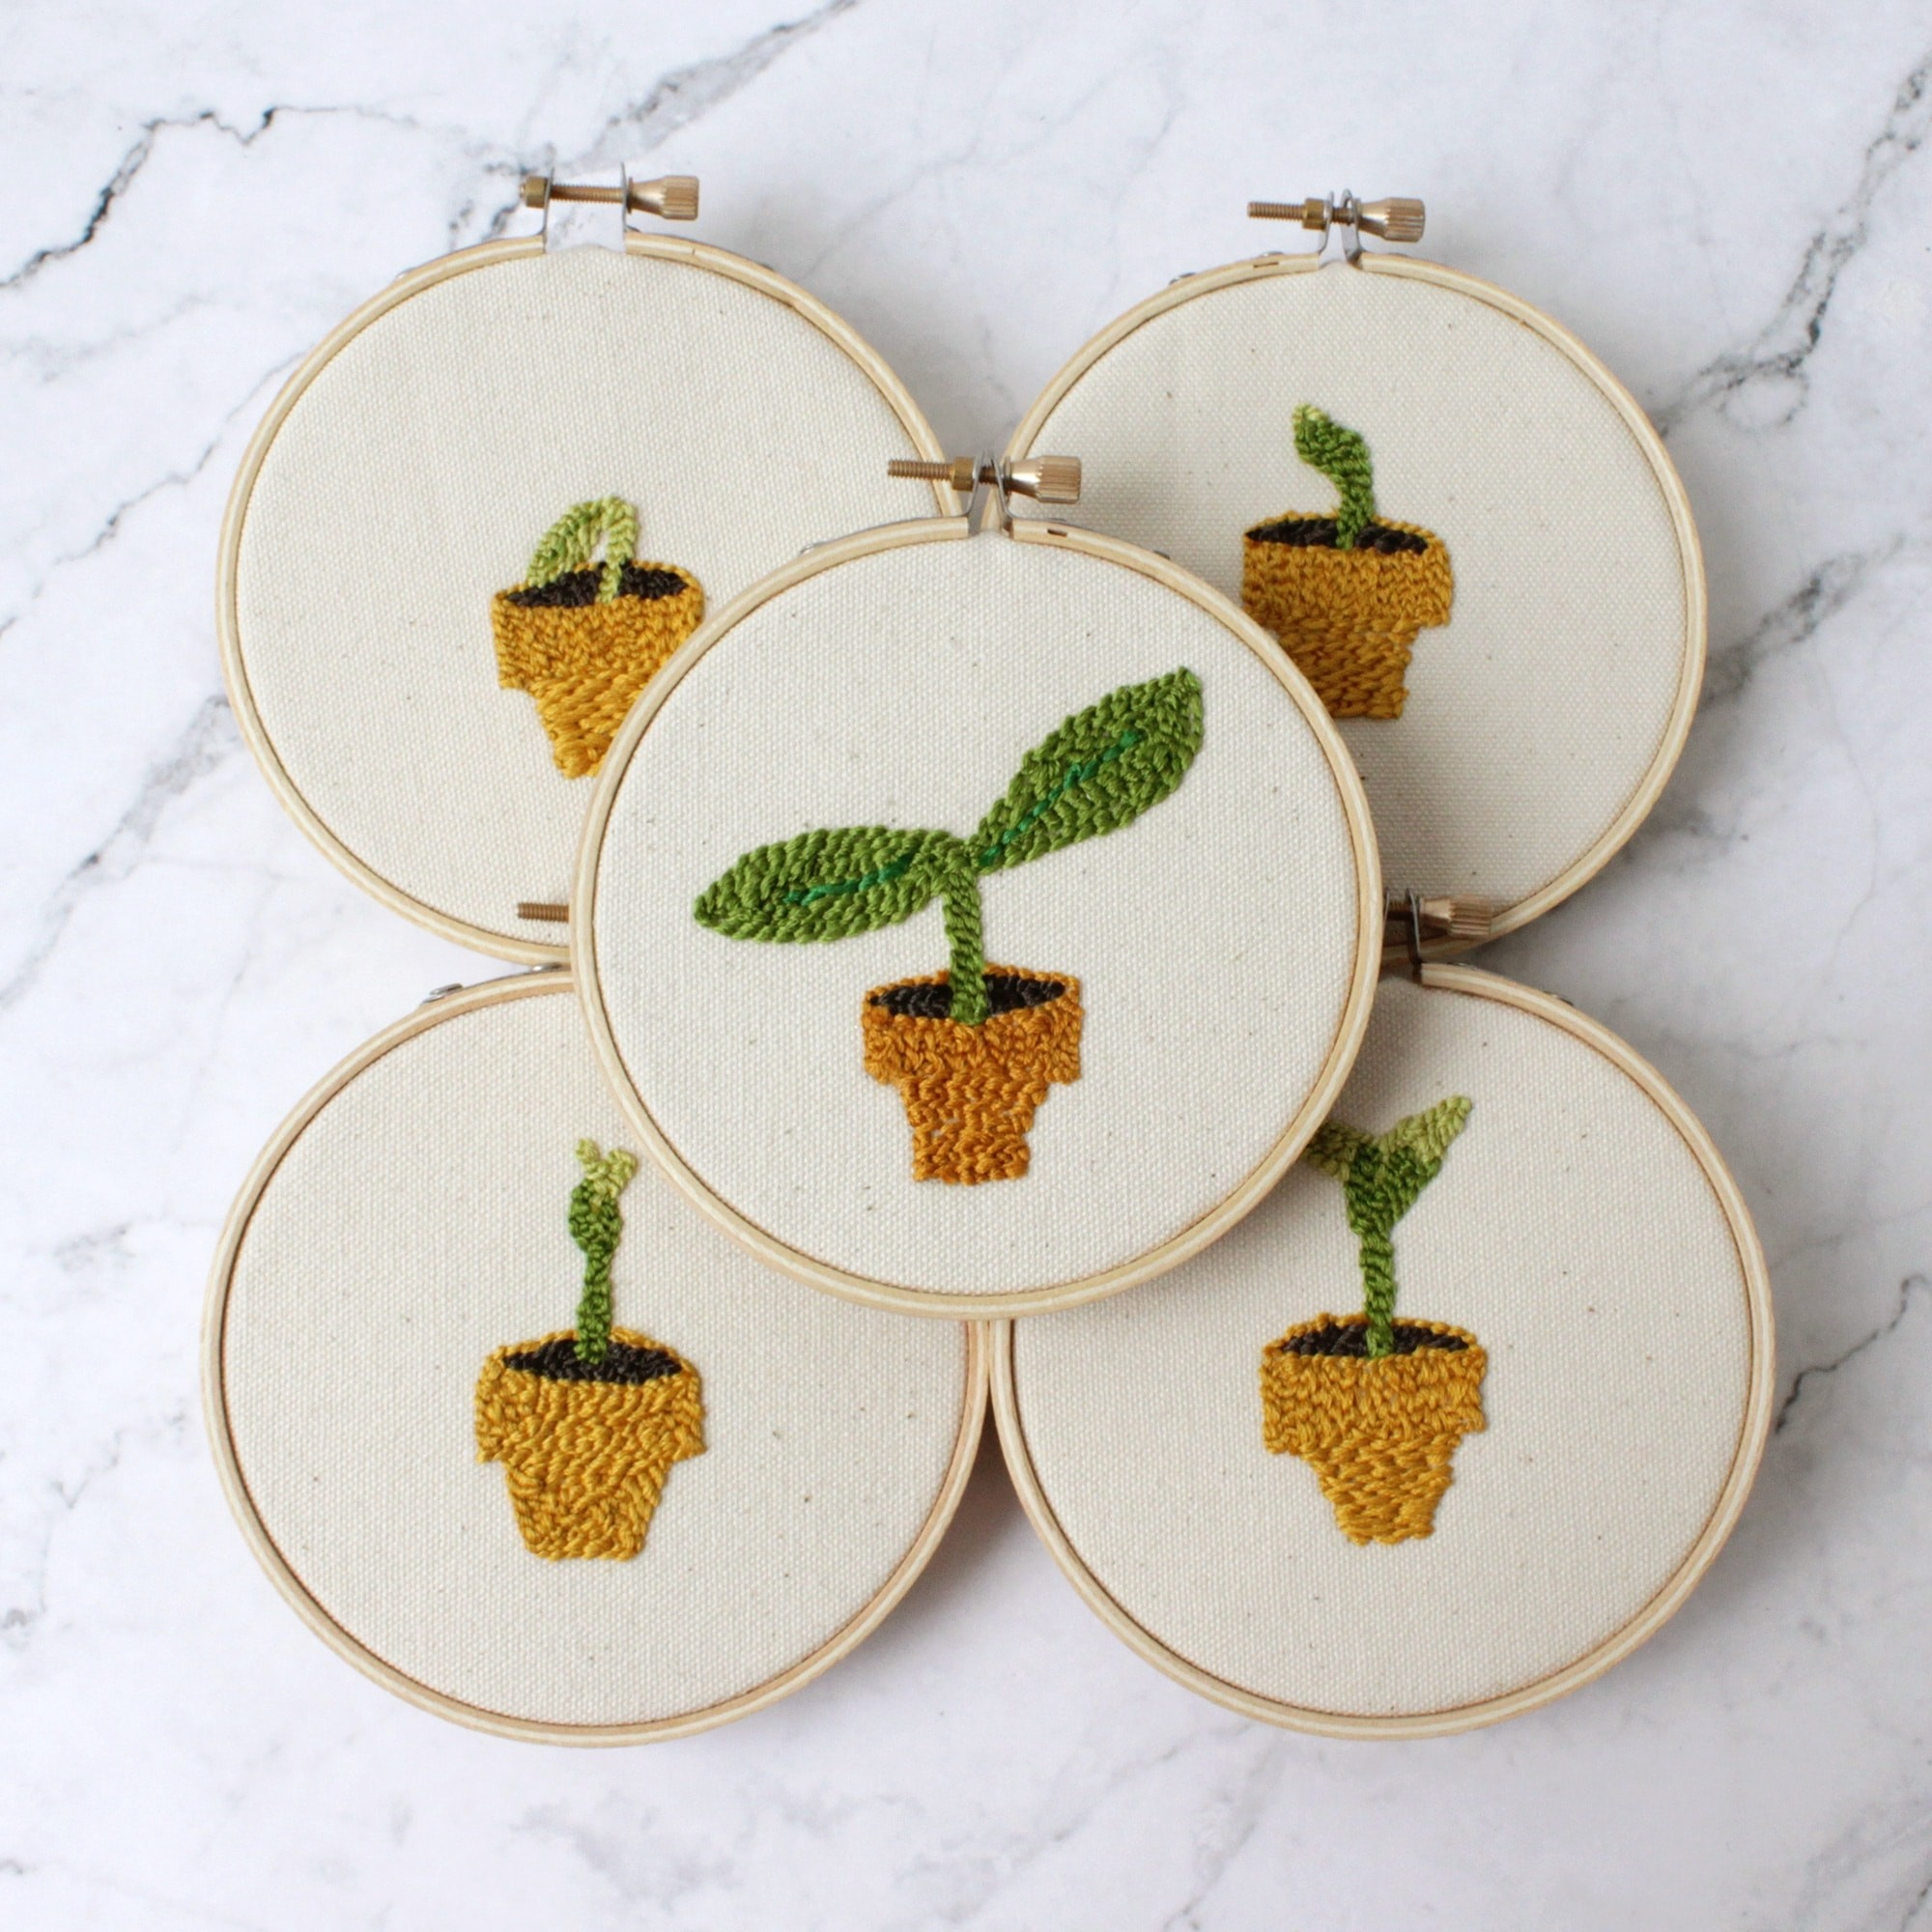 Free Punch Needle Embroidery Patterns The Power Of Punch Needle Embroidery Deserres